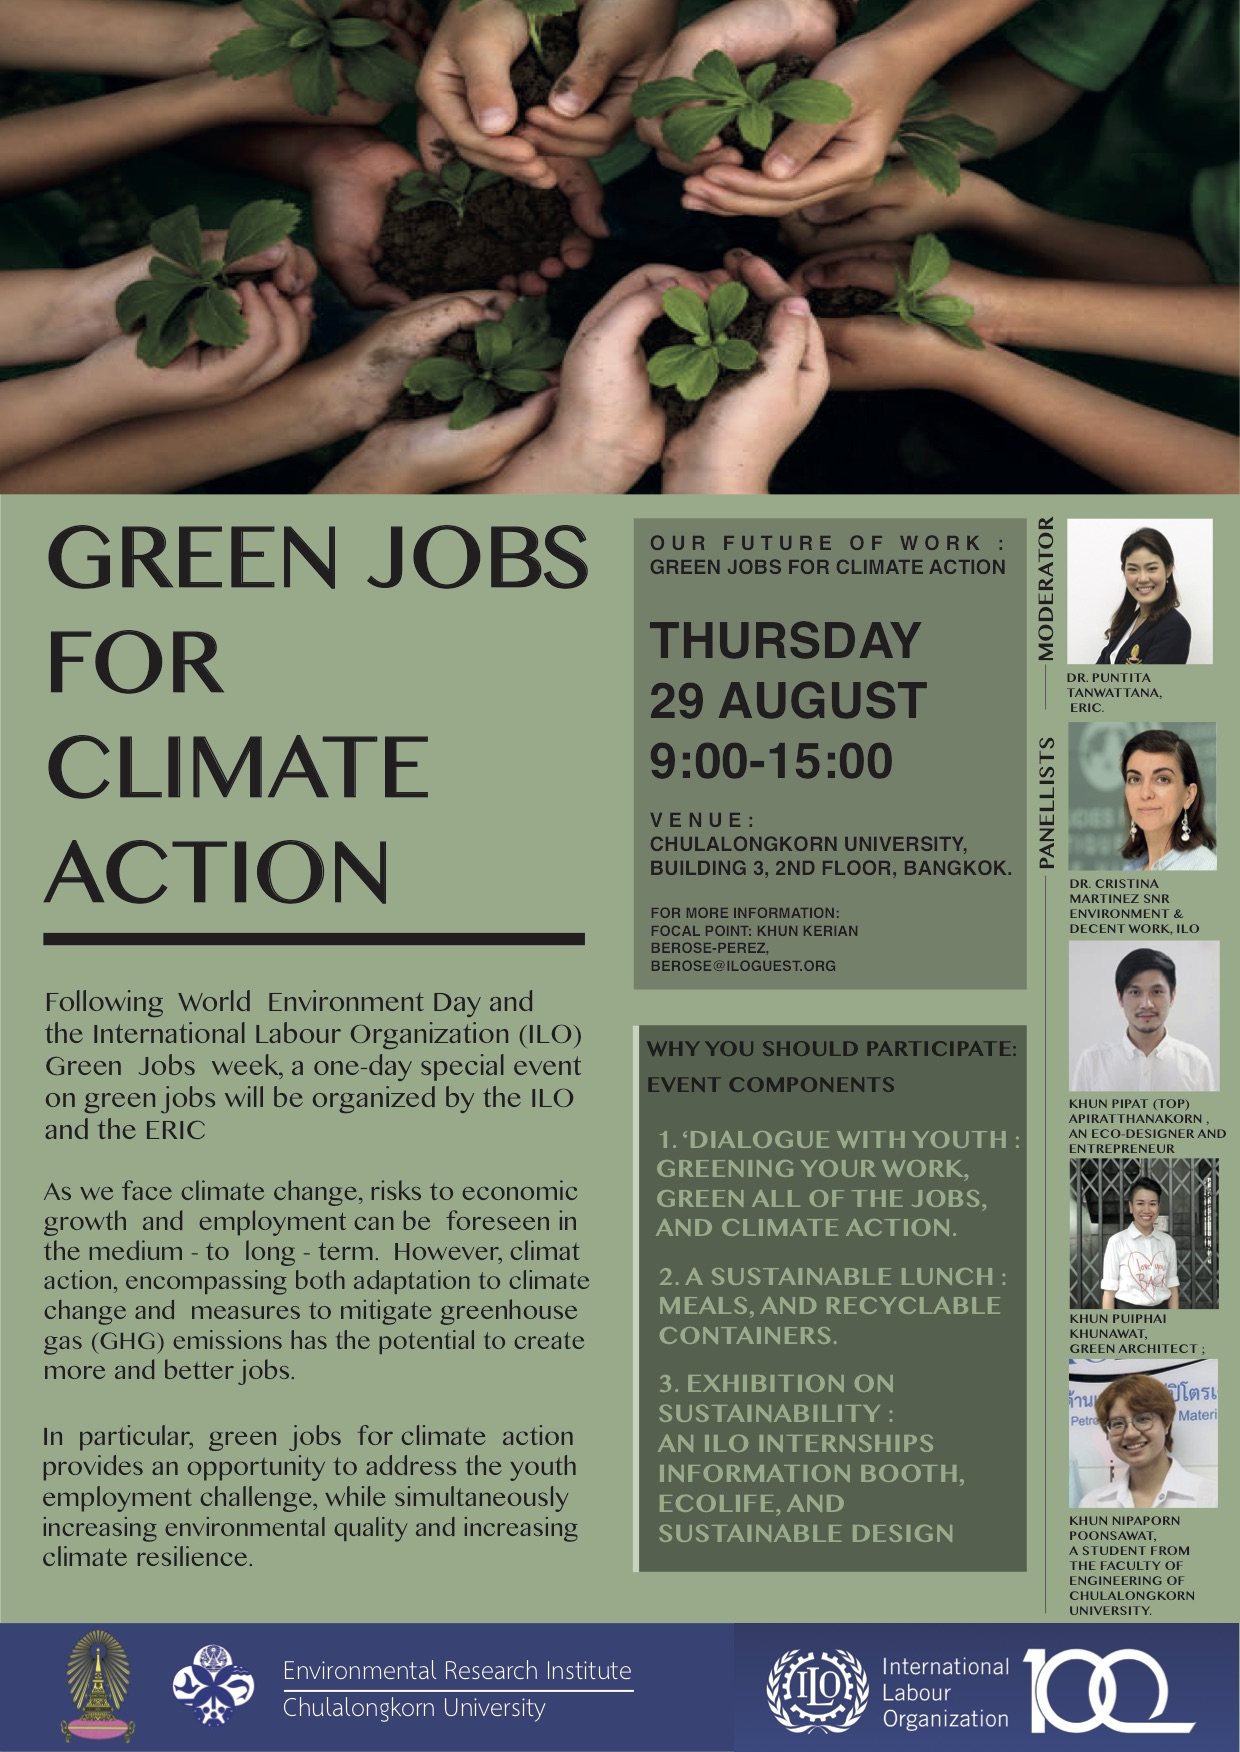 Green jobs in Asia and the Pacific (ILO in Asia and the Pacific)